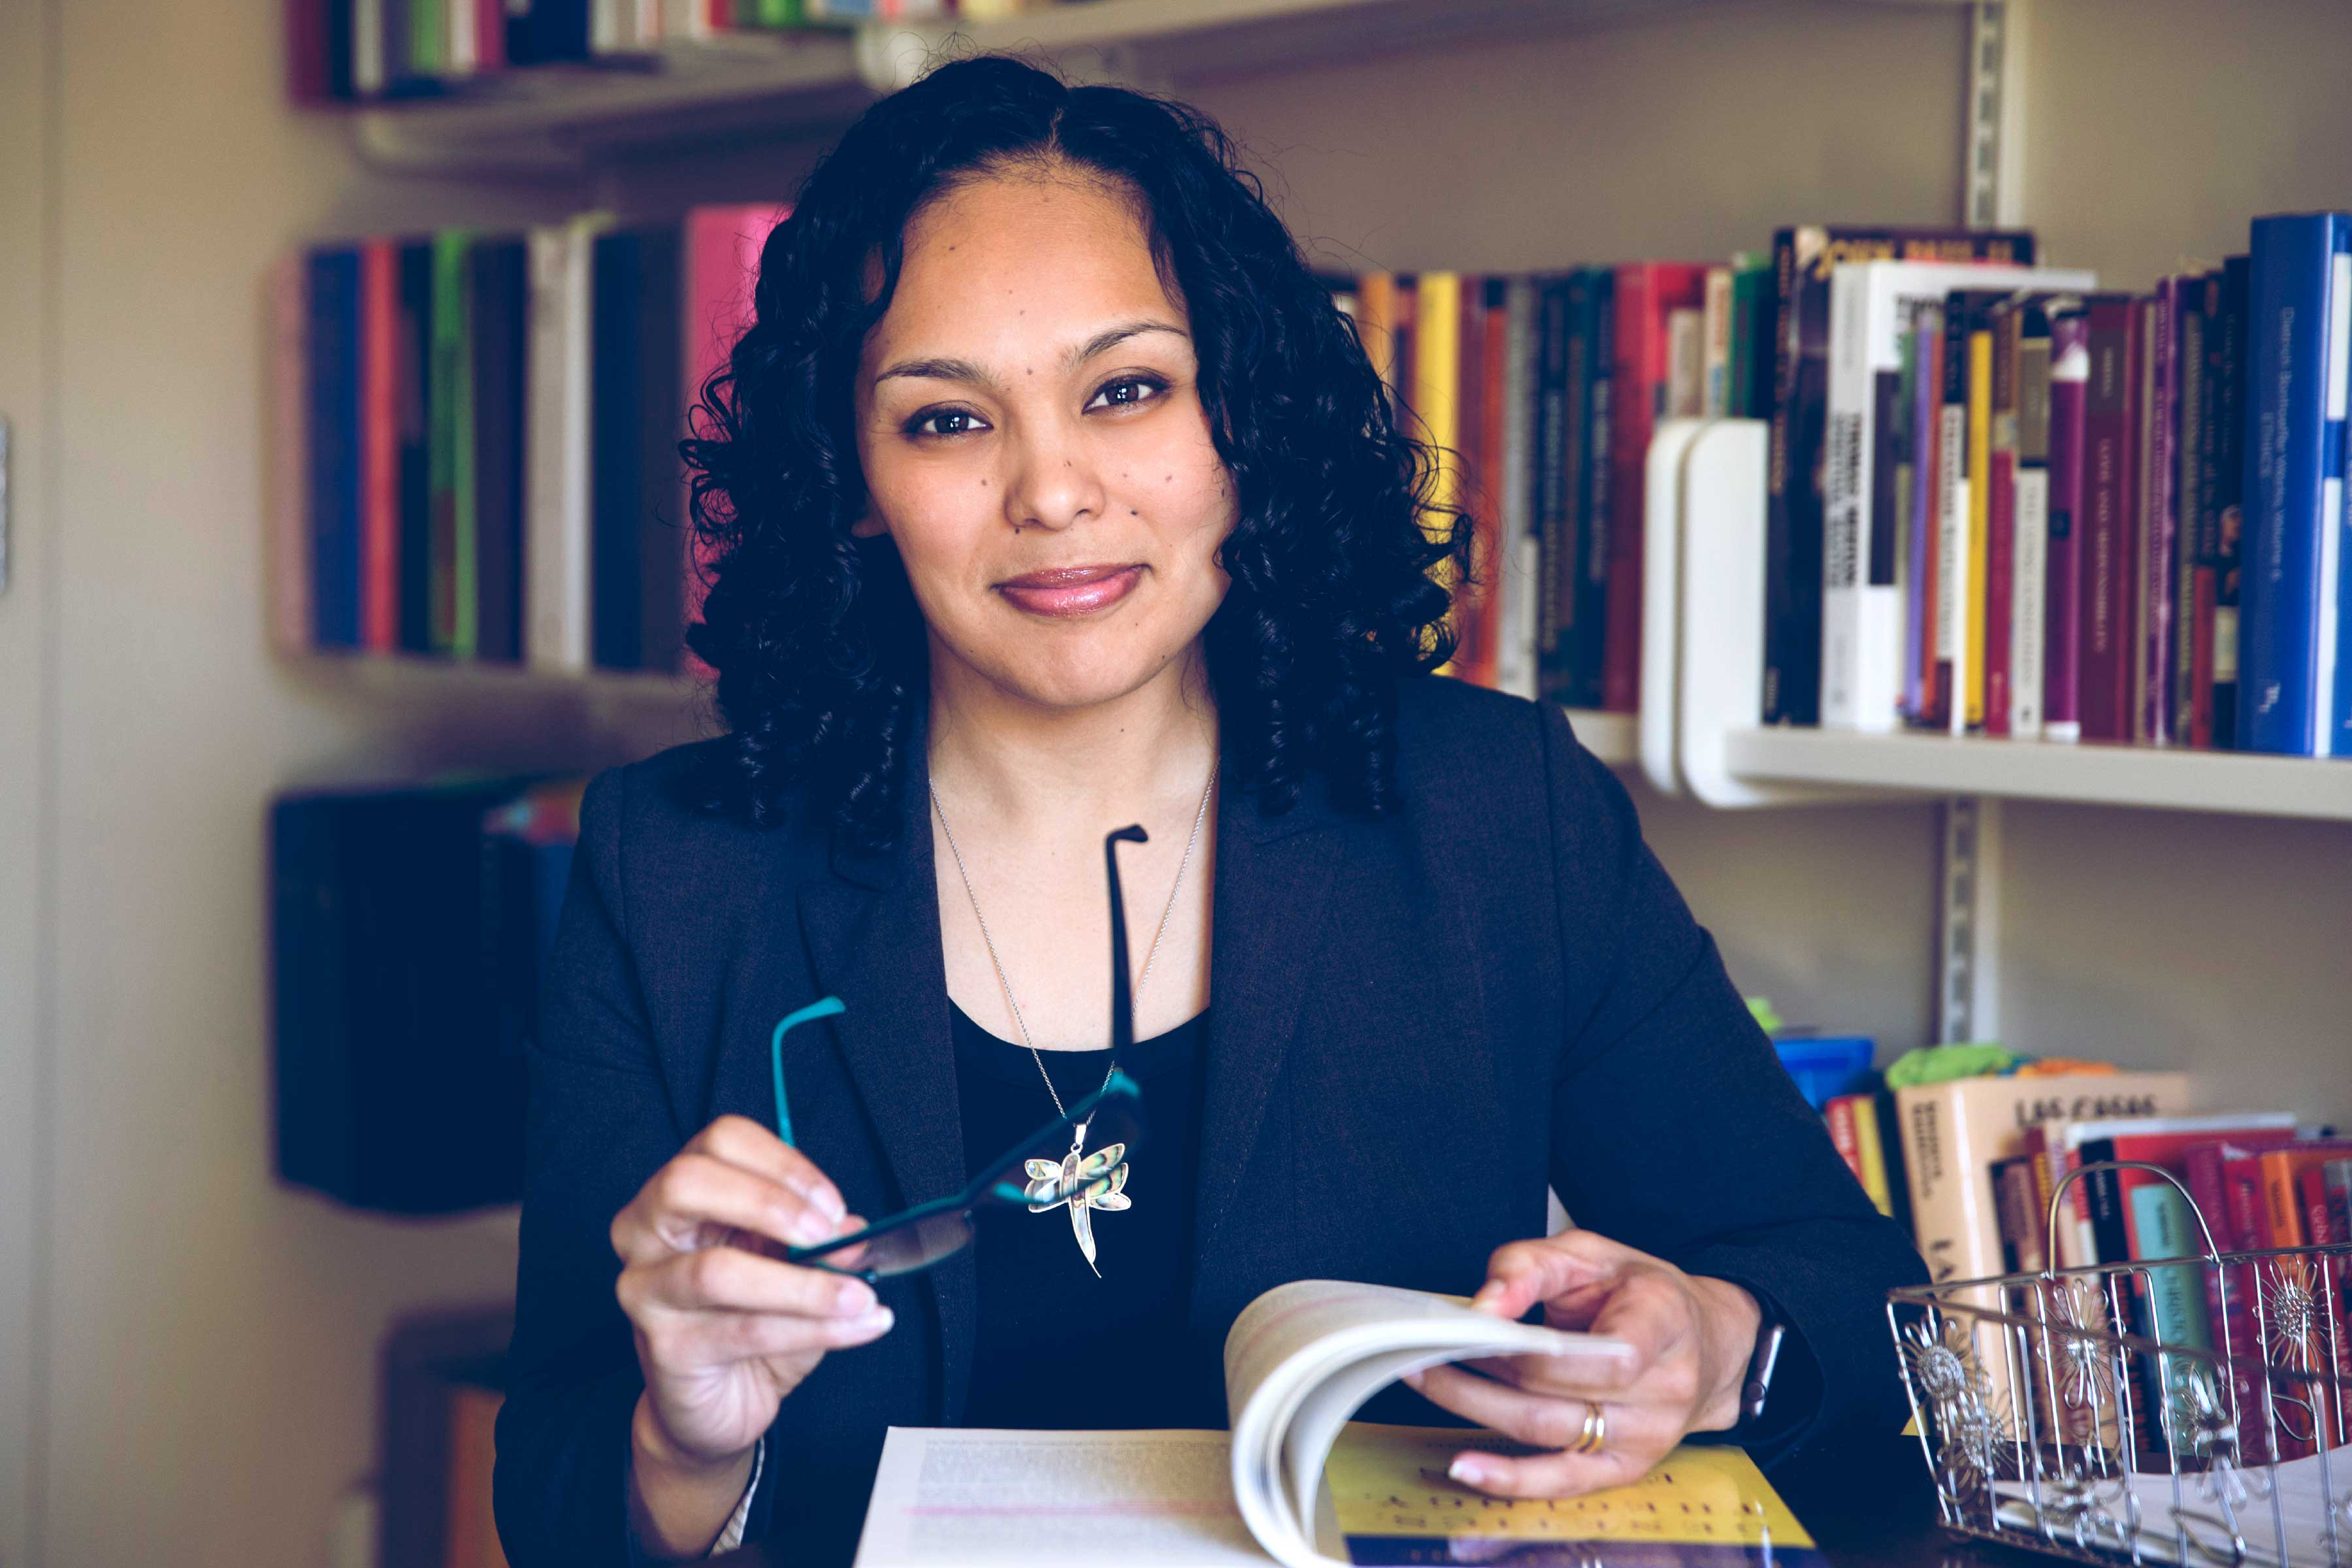 Professor Nichole Flores joined UVA's Department of Religious Studies in 2015. (Photo by Dan Addison, University Communications)